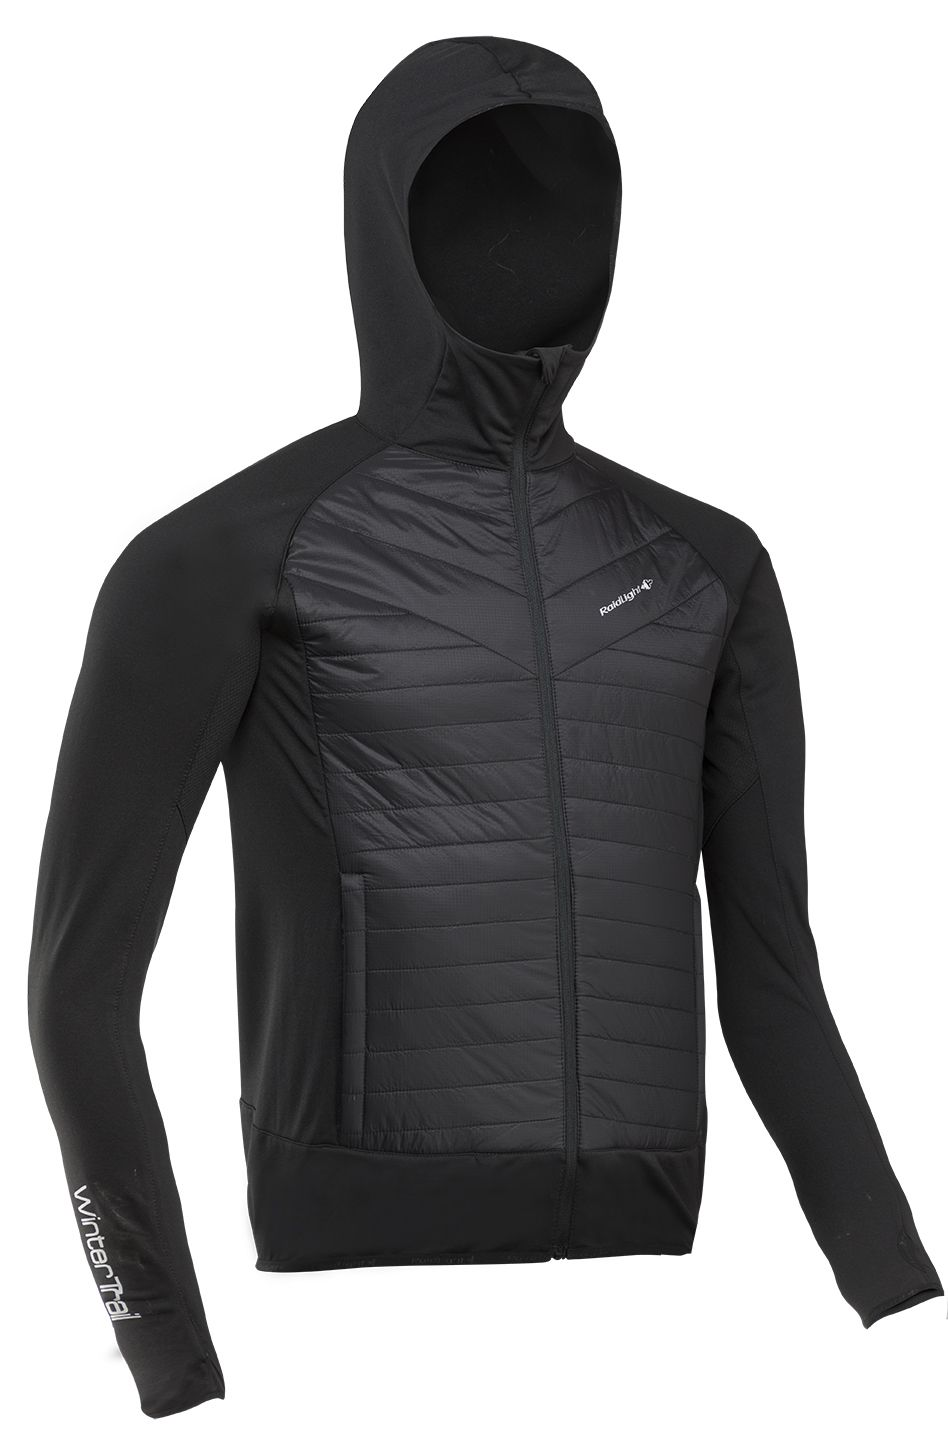 GIACCA RAIDLIGHT WINTERTRAIL HYBRID JACKET GLHMJ10 BLACK.jpg